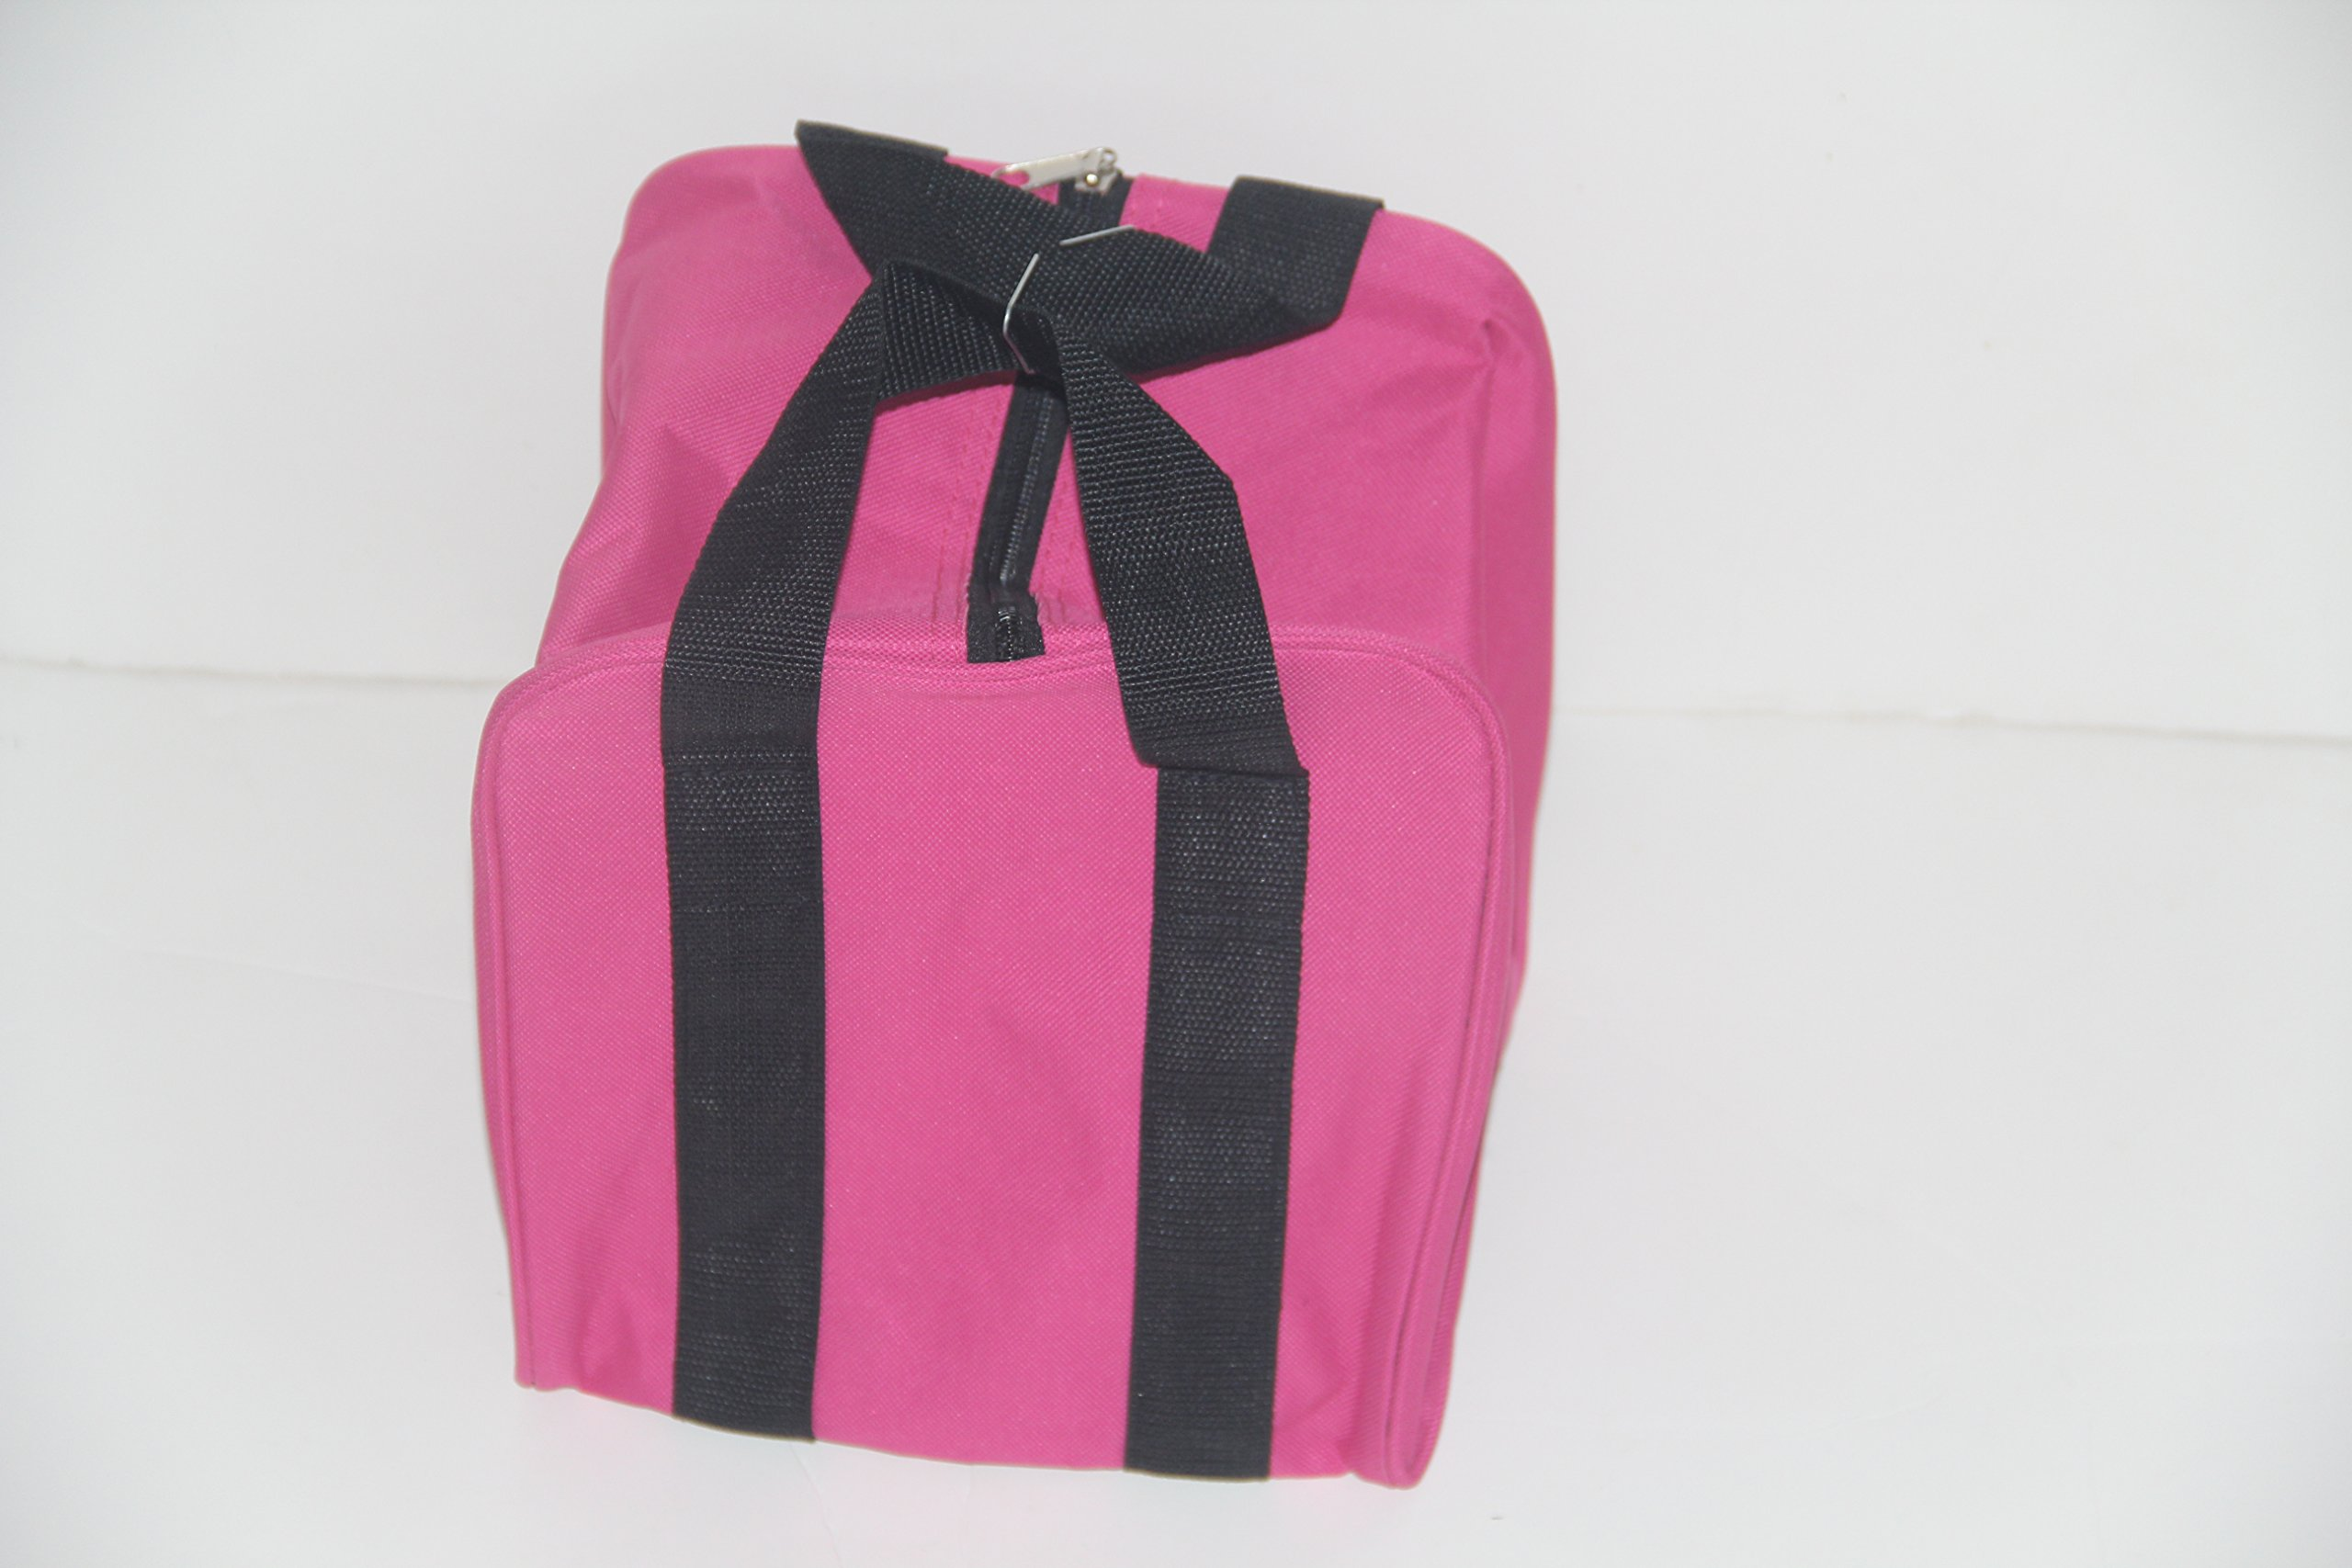 New Premium Quality - Extra Heavy Duty Nylon Bocce Bag - Pink with Black Handles by Epco